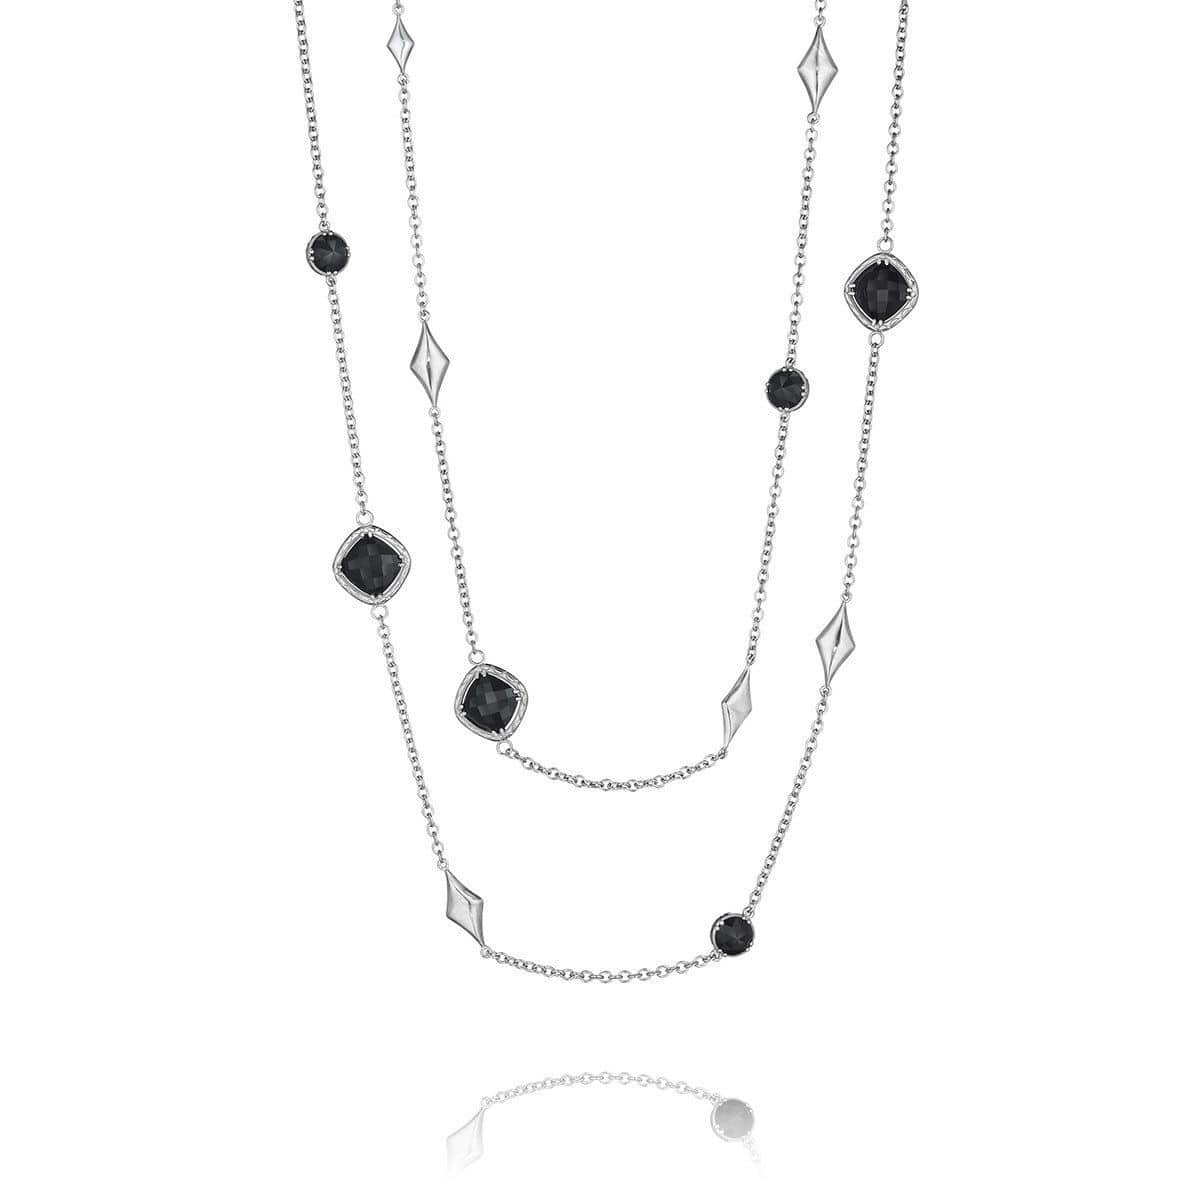 Silver Black Onyx Chain Necklace - SN16619-Tacori-Renee Taylor Gallery